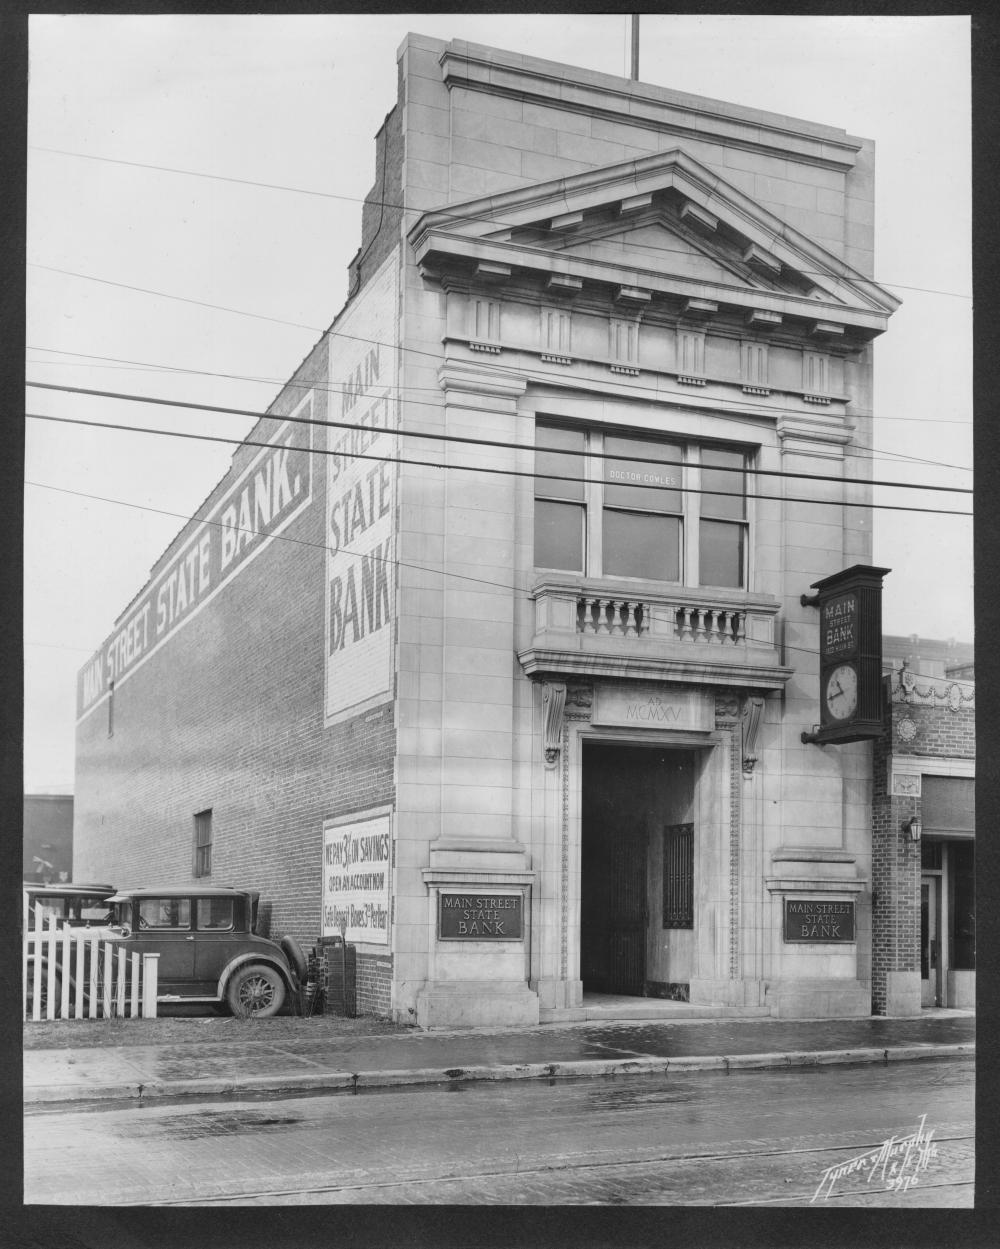 House Doctor Bank Main Street State Bank The Pendergast Years